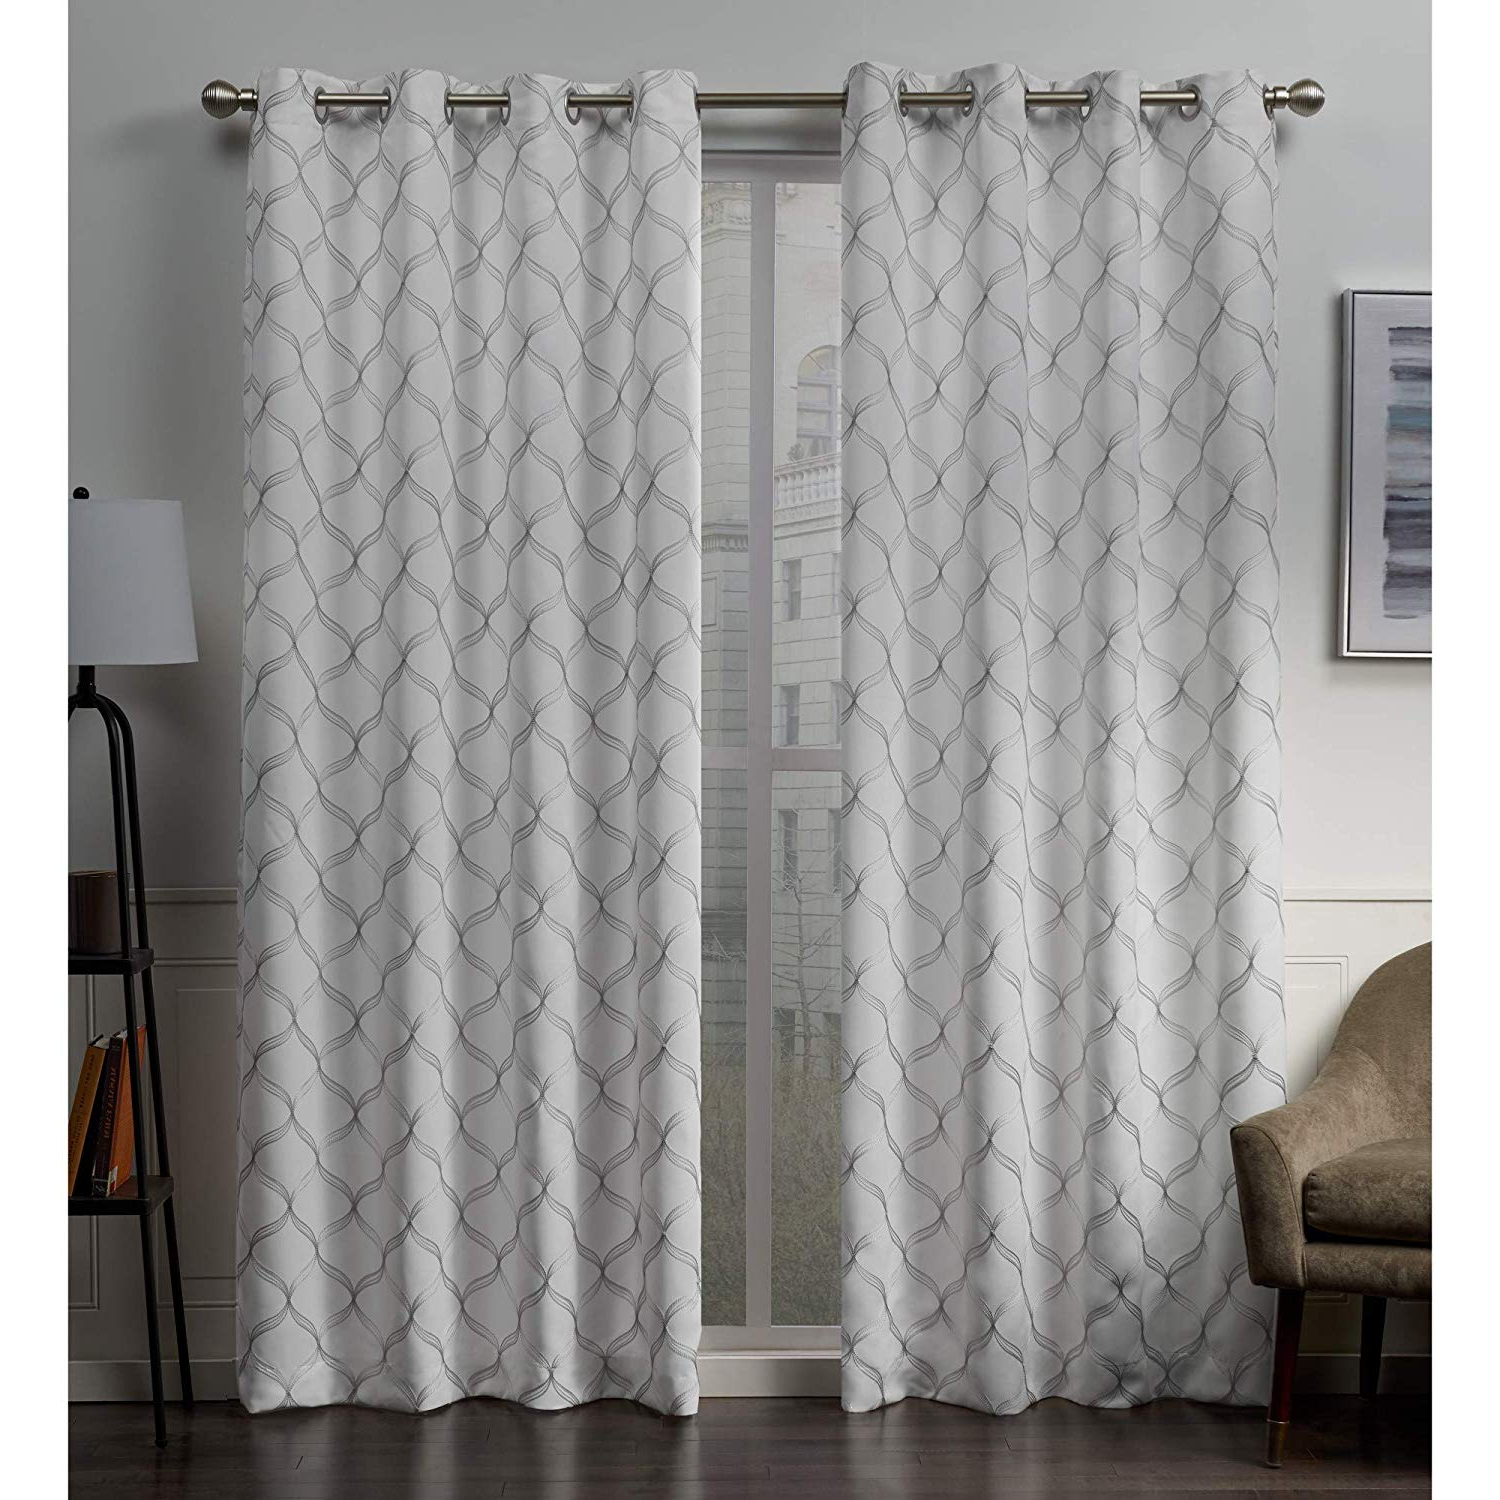 Most Current Exclusive Home Curtains Amelia Embroidered Woven Blackout Grommet Top Curtain Panel Pair, 52x96, Winter Inside Woven Blackout Grommet Top Curtain Panel Pairs (View 4 of 20)